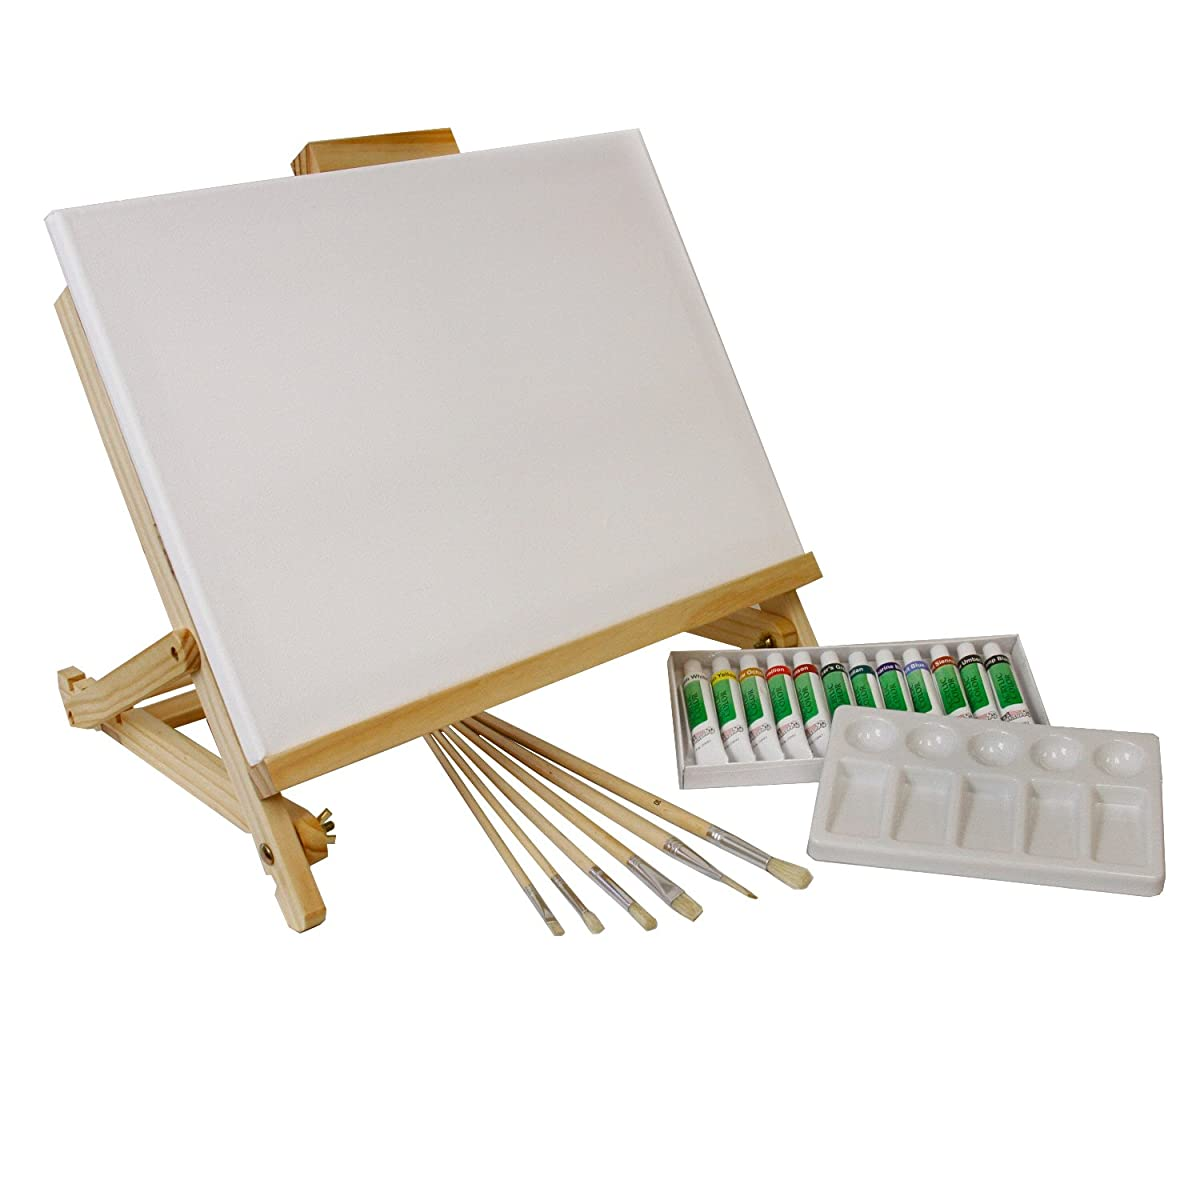 Us art supply 21 piece acrylic painting table easel set for Acrylic mural paint supplies